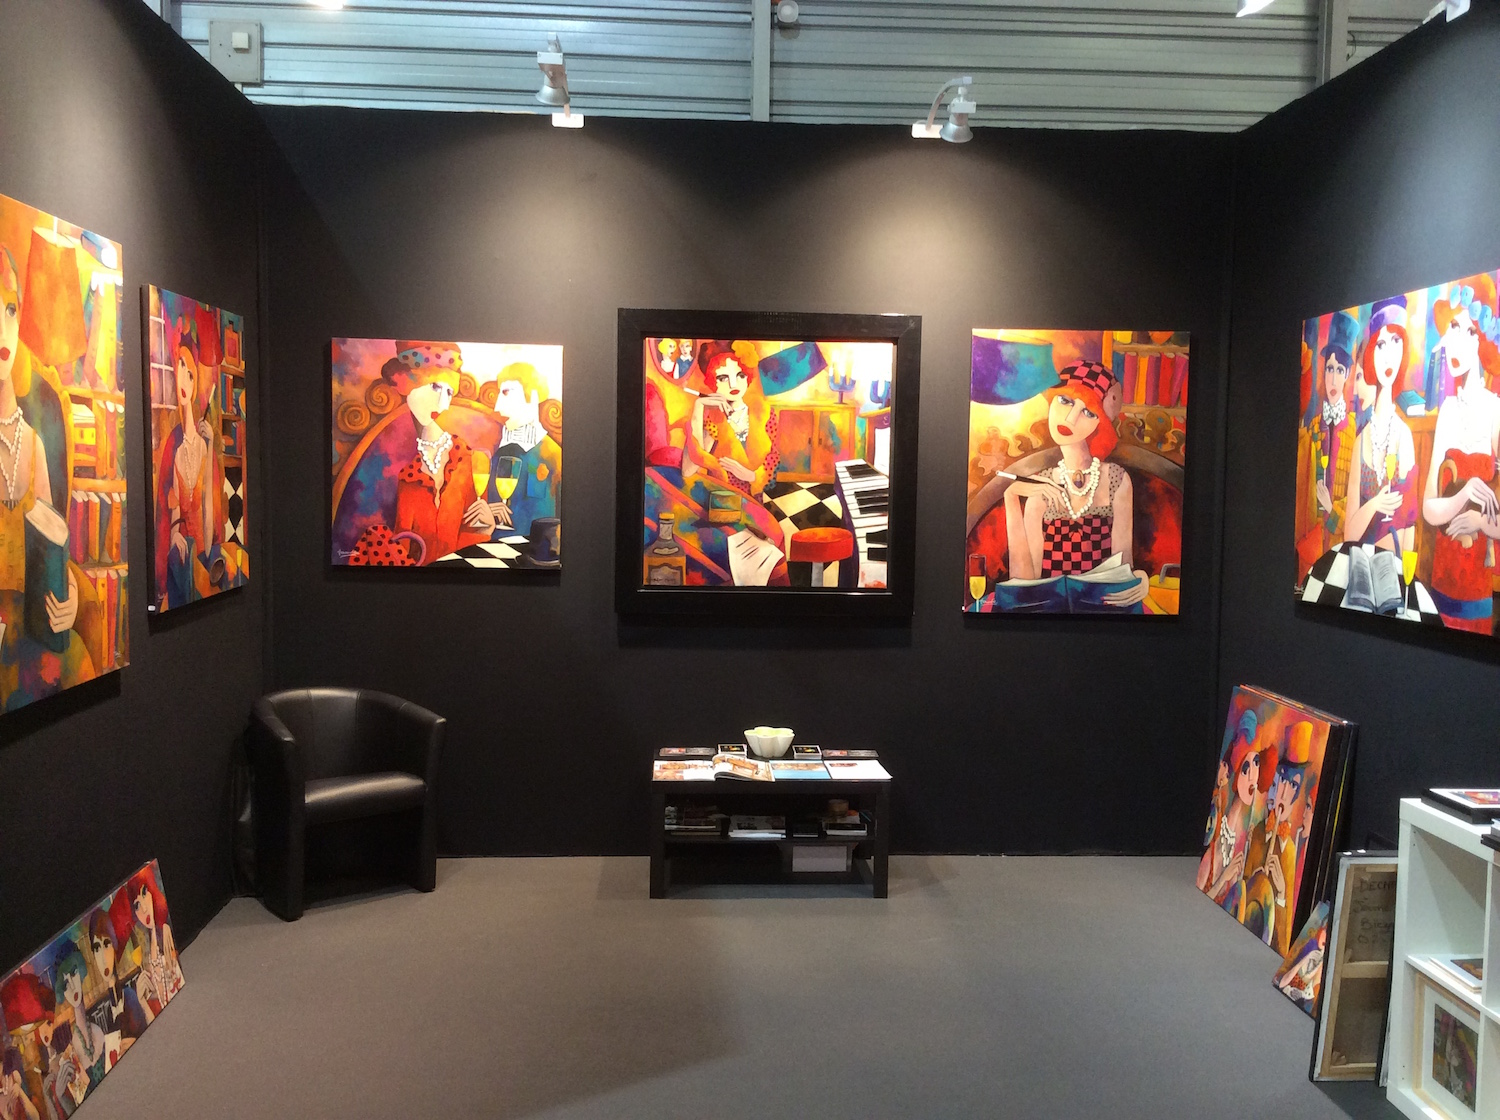 salon art3f mulhouse 2014 artiste peintre fauve